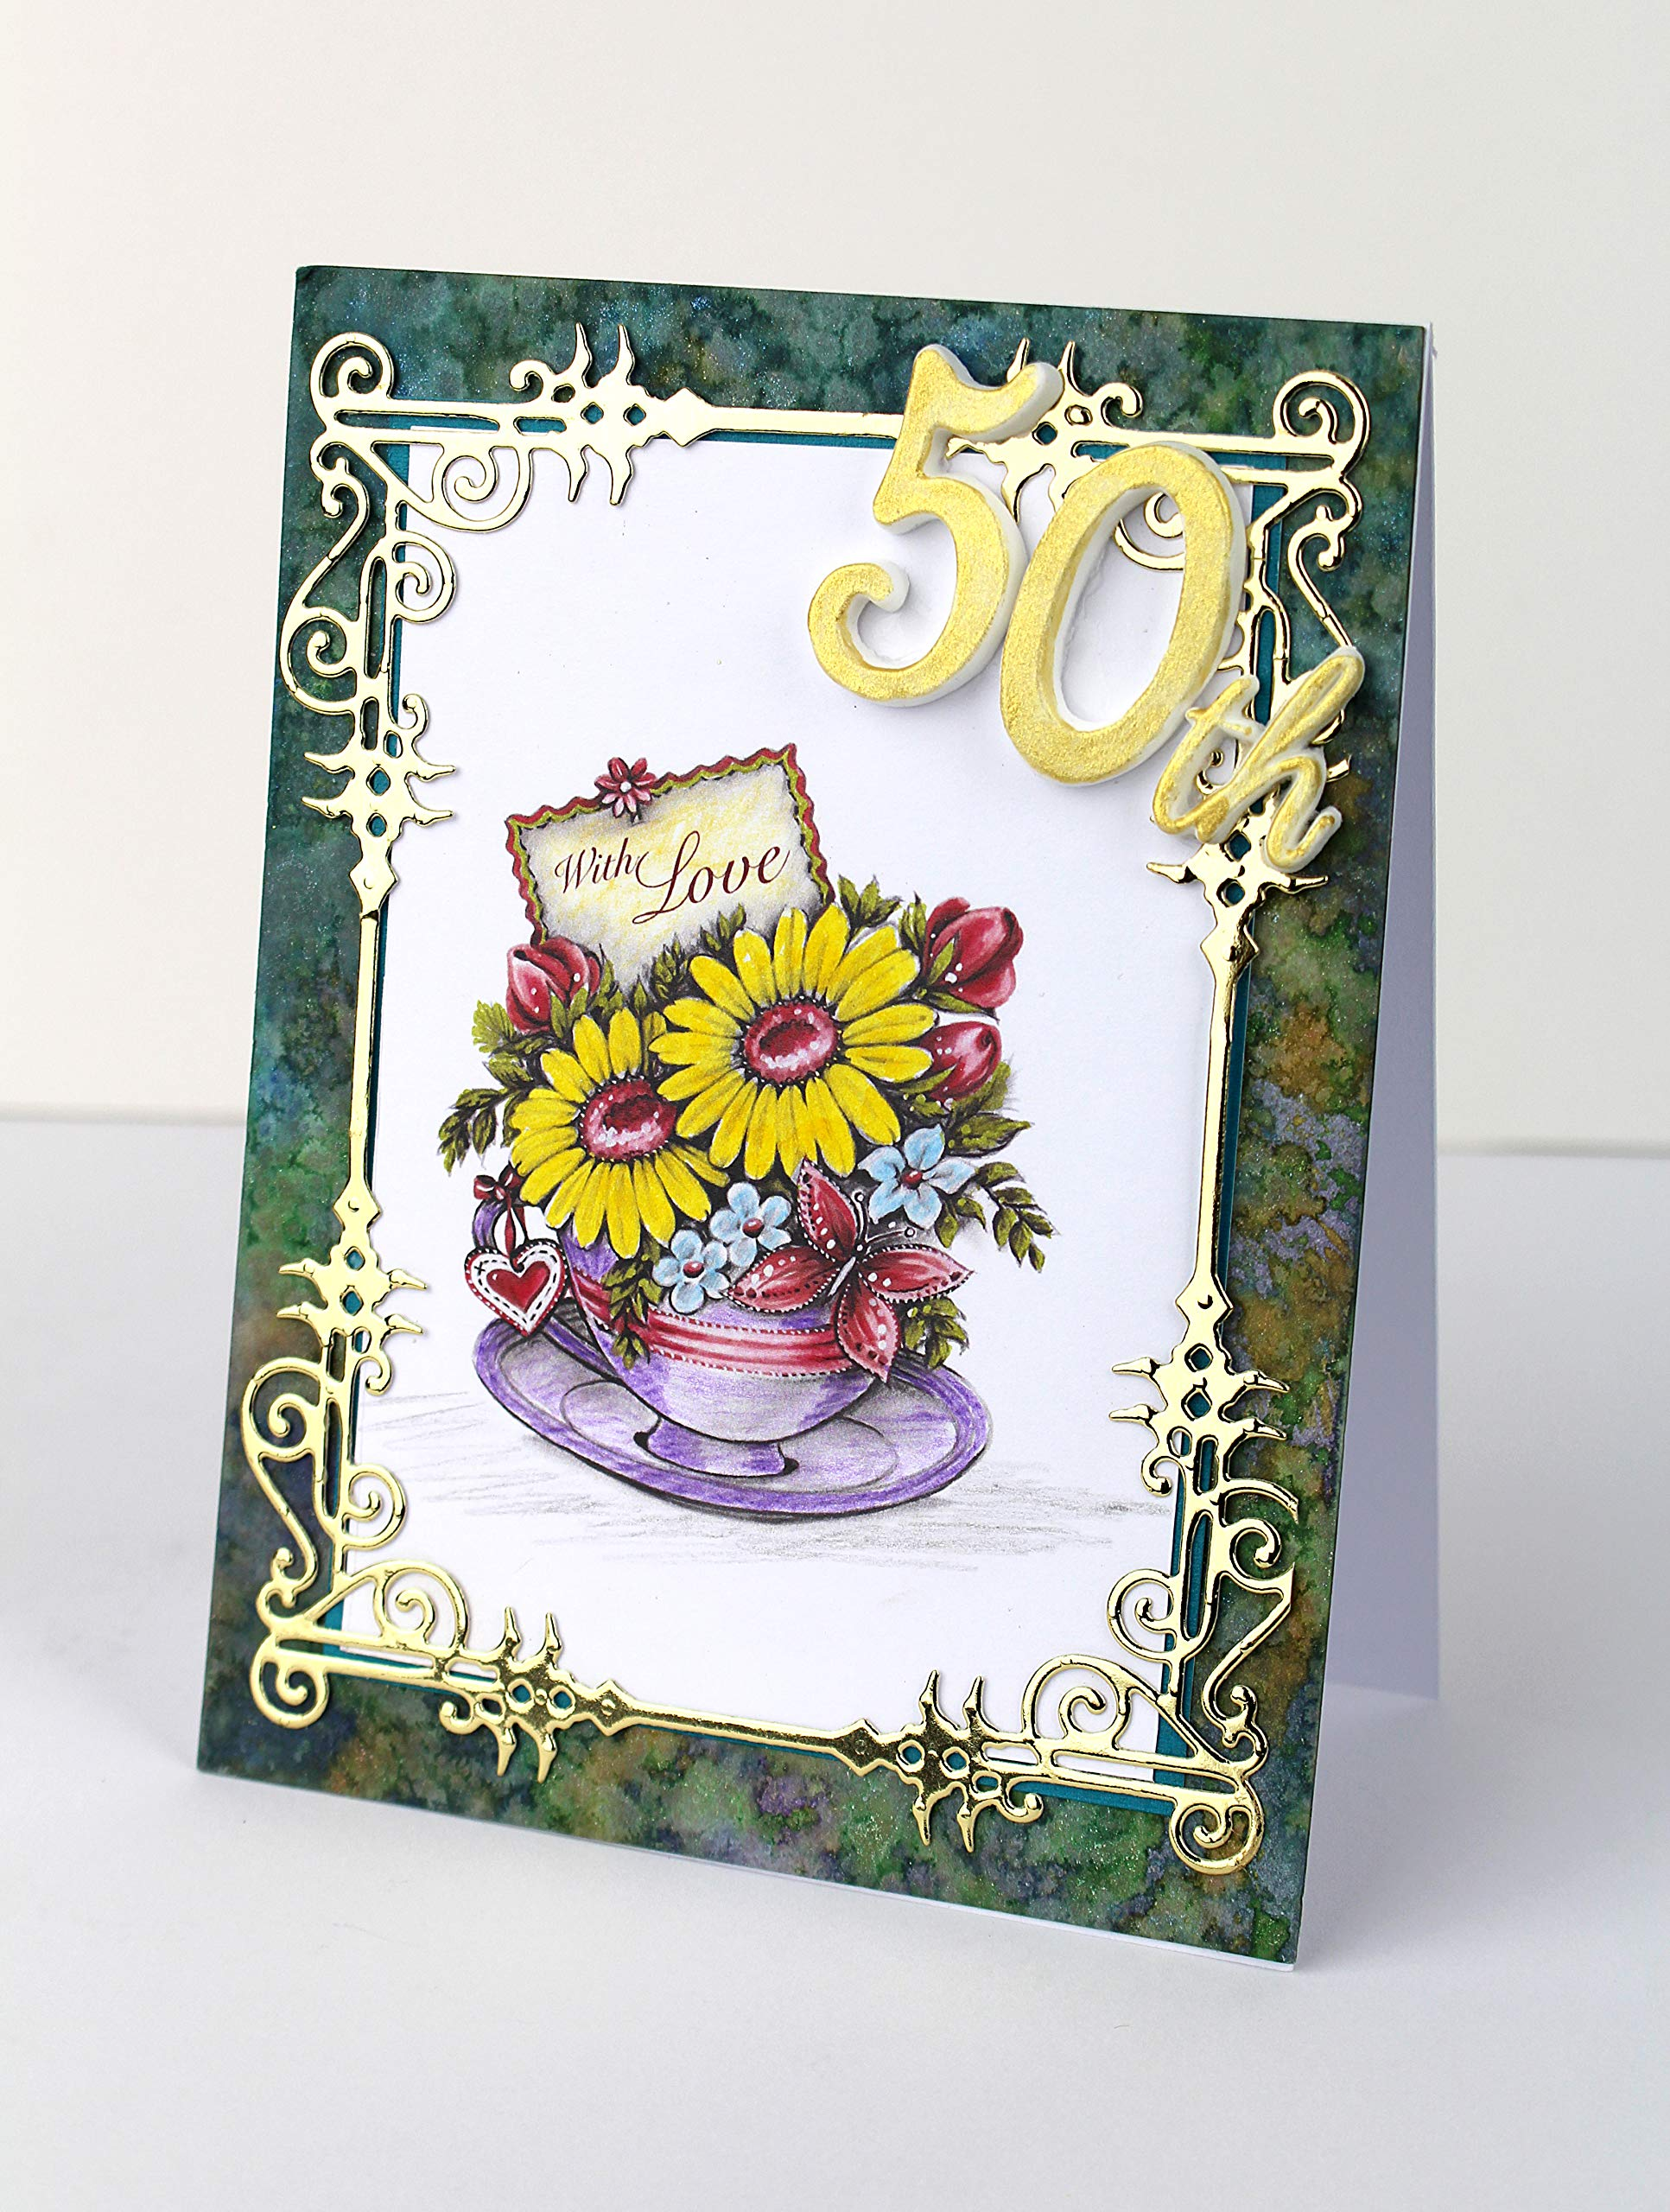 Say it with Flowers Greyscale Collection Paper Pad, Paper Craft Pads, Card Making Kit, Makes 120 Card Toppers, Works with Dies by Katy Sue (Image #3)